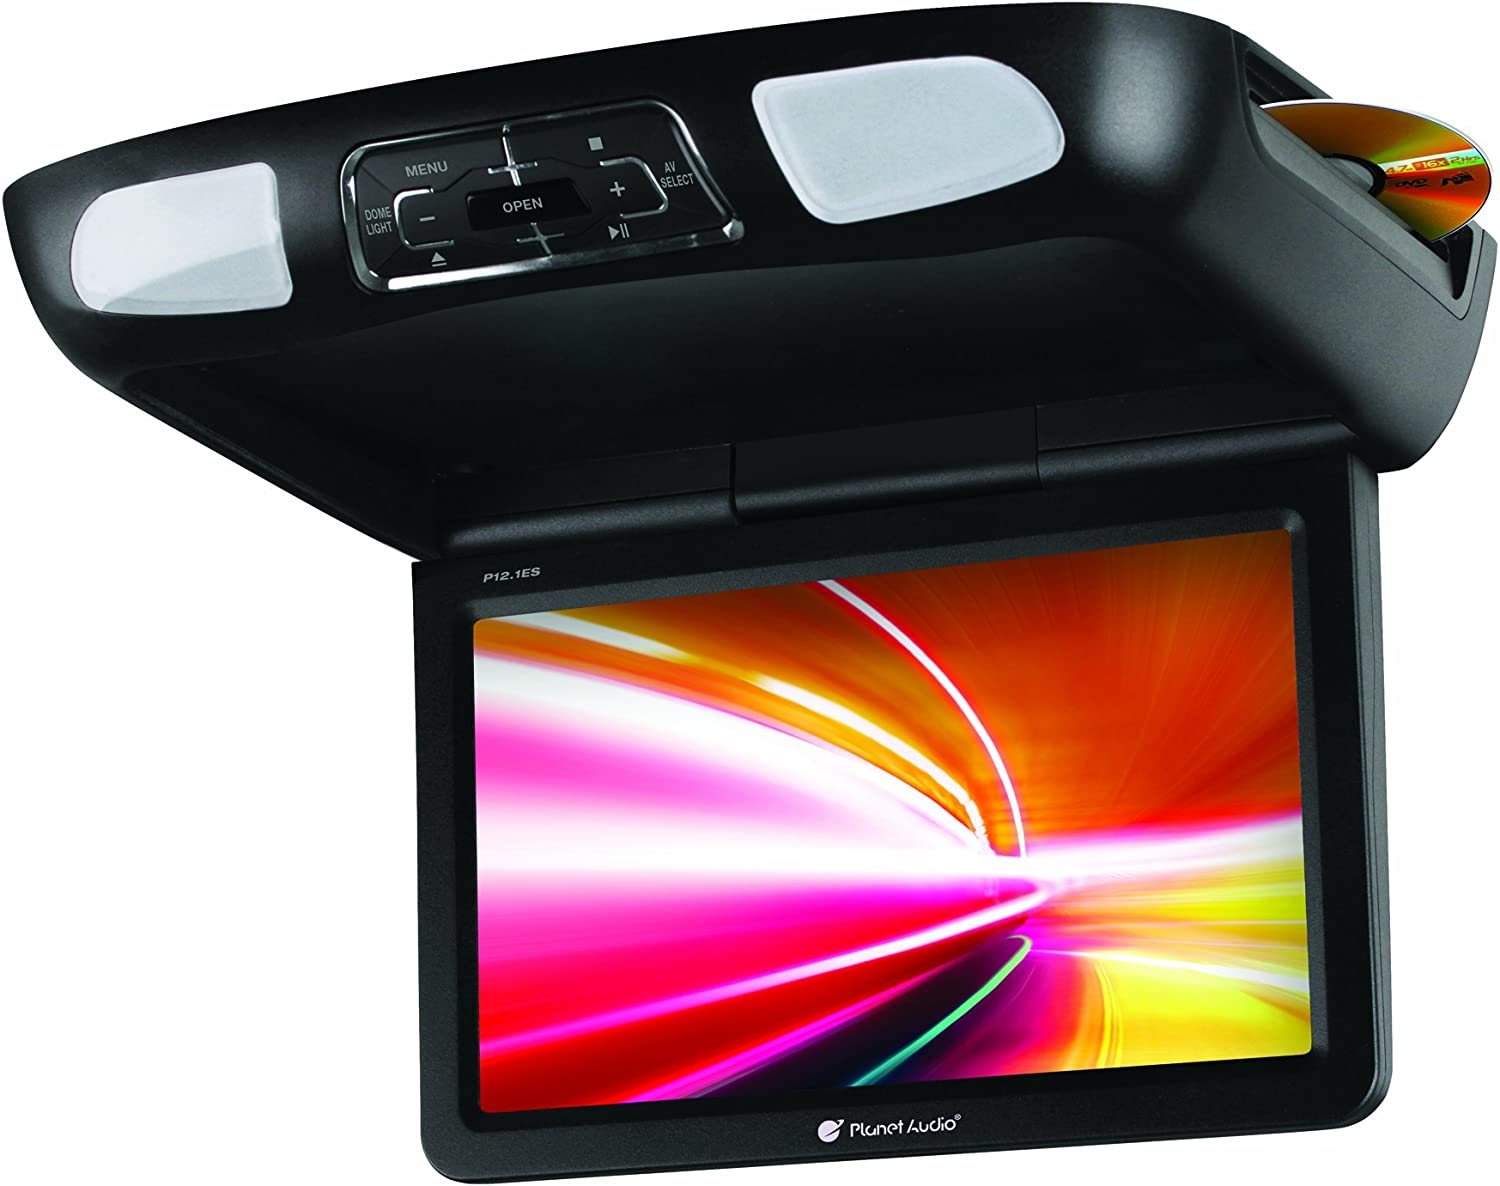 Planet Audio P10.1ES Car Roof-Mount Monitor and DVD Player - 10.1 Inch LCD, Widescreen, Flip-Down, FM Transmitter, IR Transmitter, Speakers, Dome Light, Interchangeable Black/Gray/Tan Housings